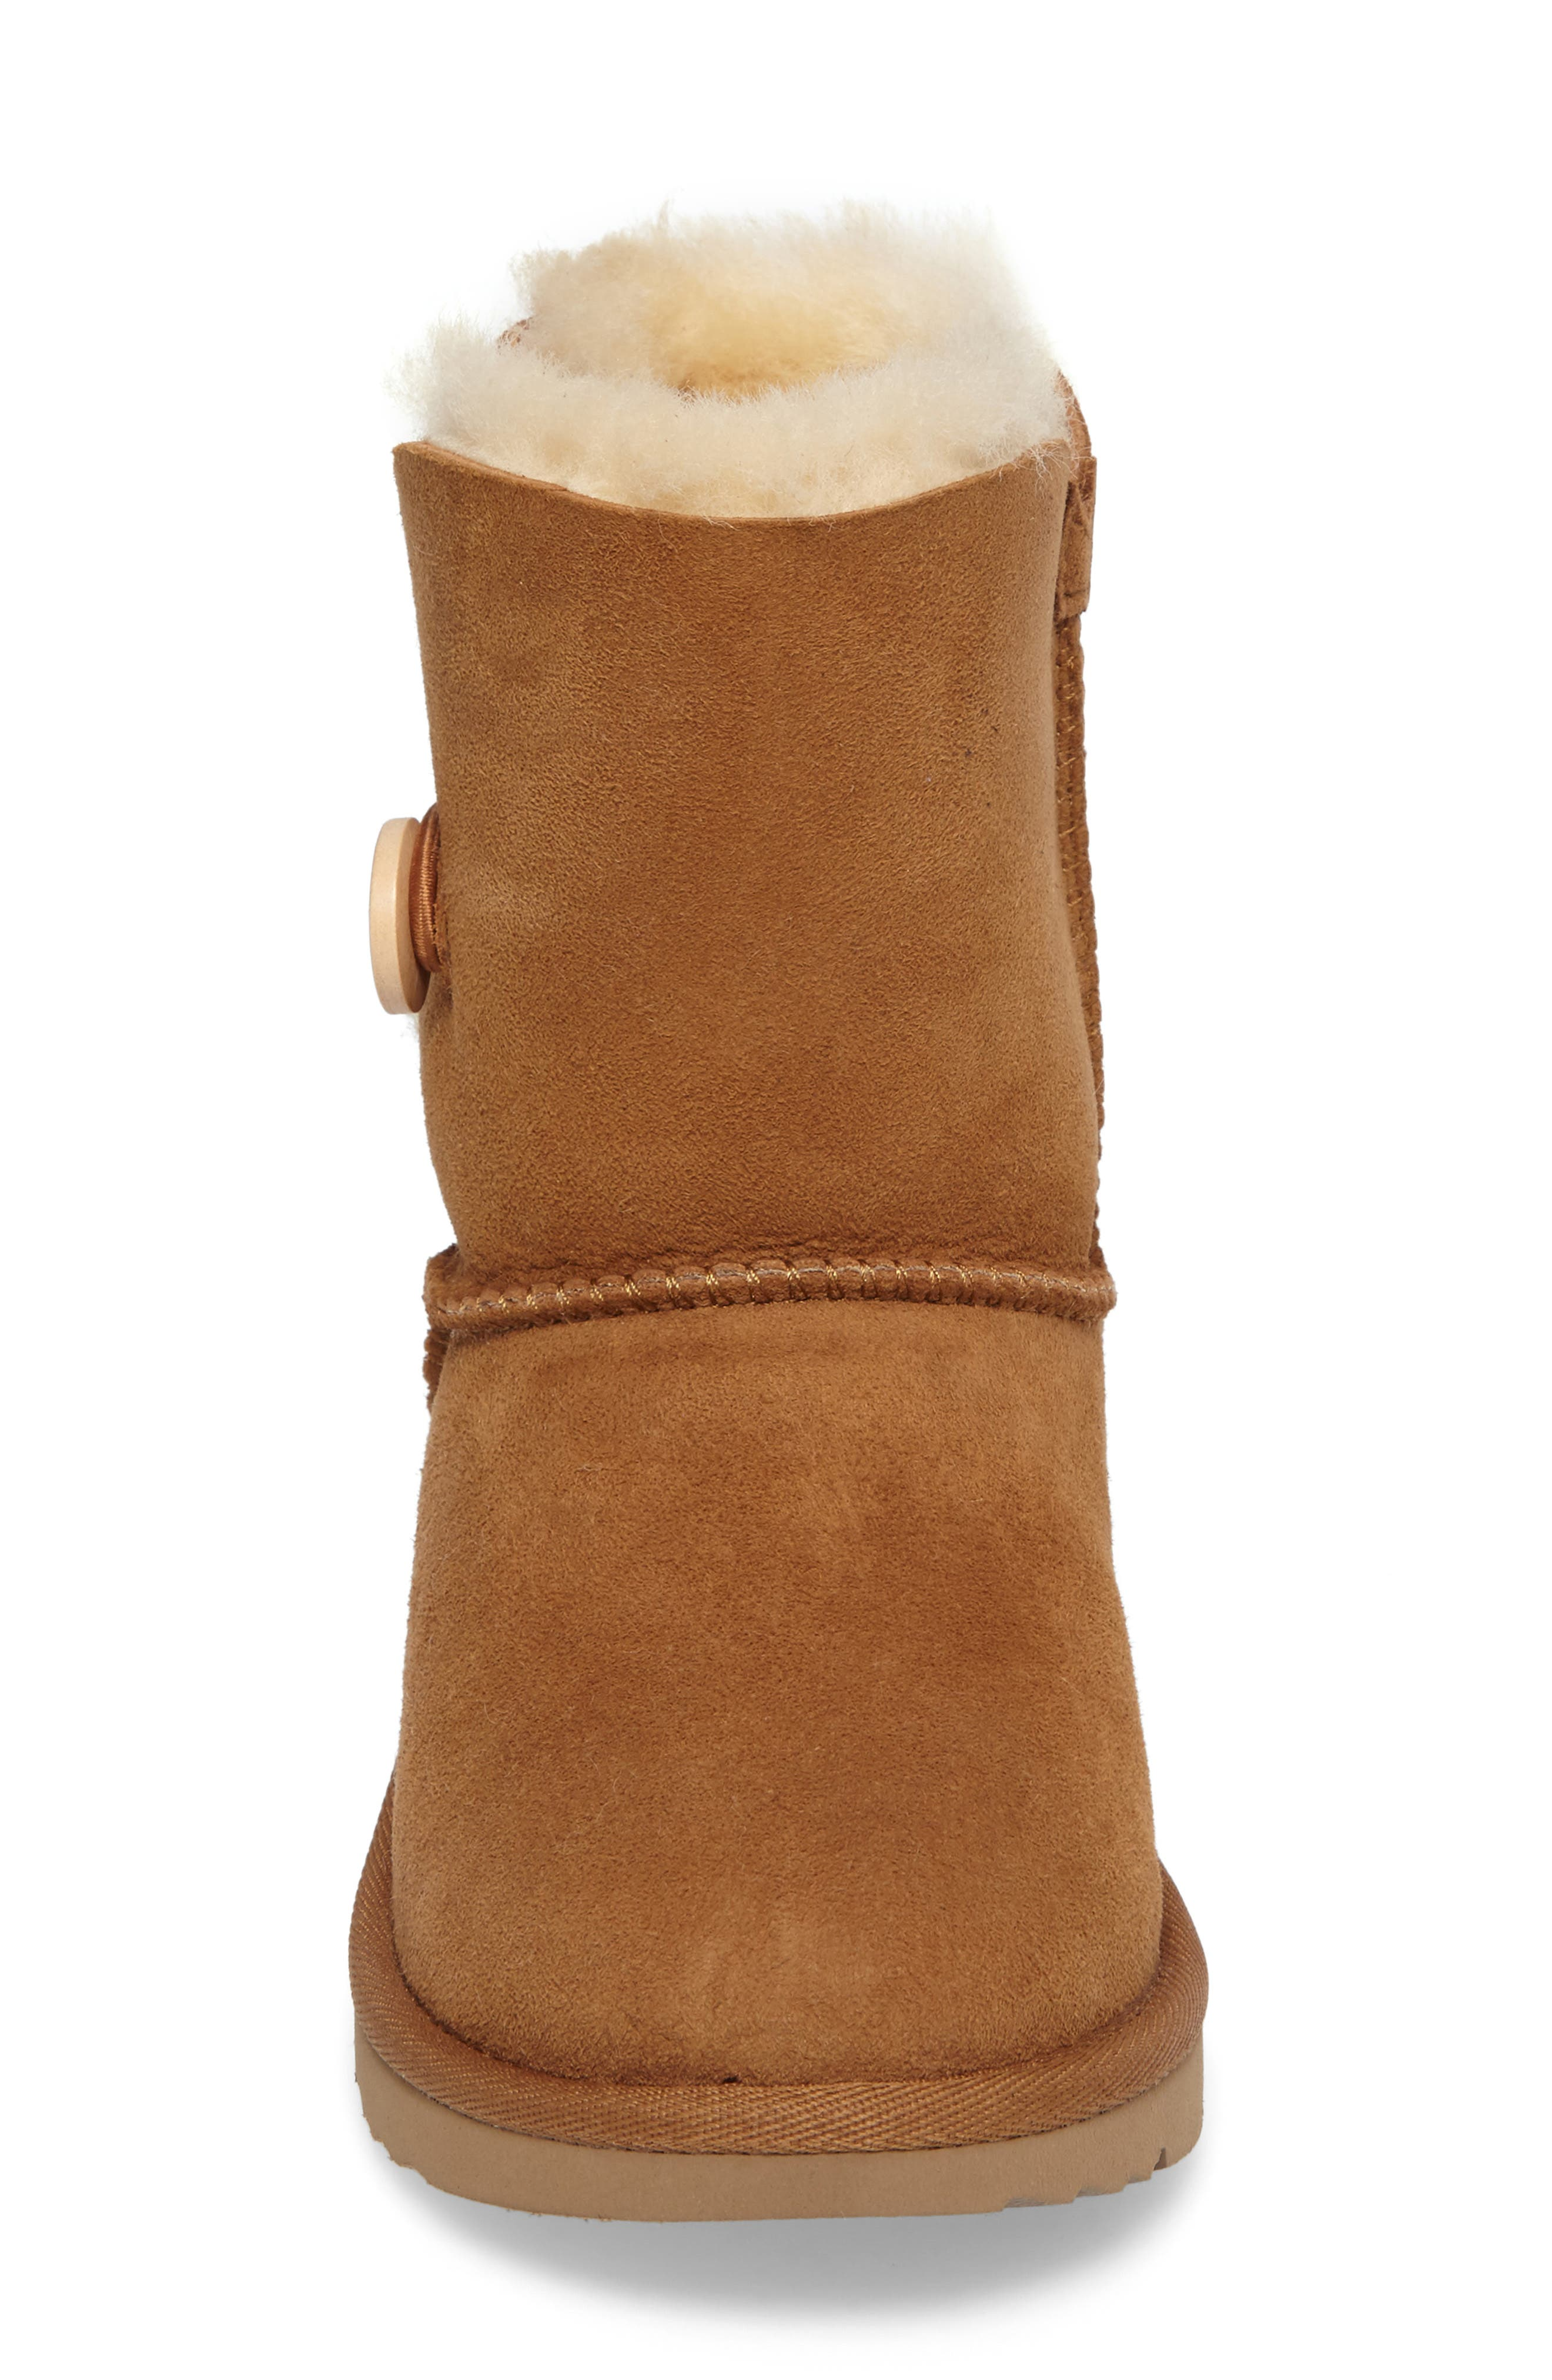 Alternate Image 4  - UGG® Bailey Button II Water Resistant Genuine Shearling Boot (Walker, Toddler, Little Kid & Big Kid)